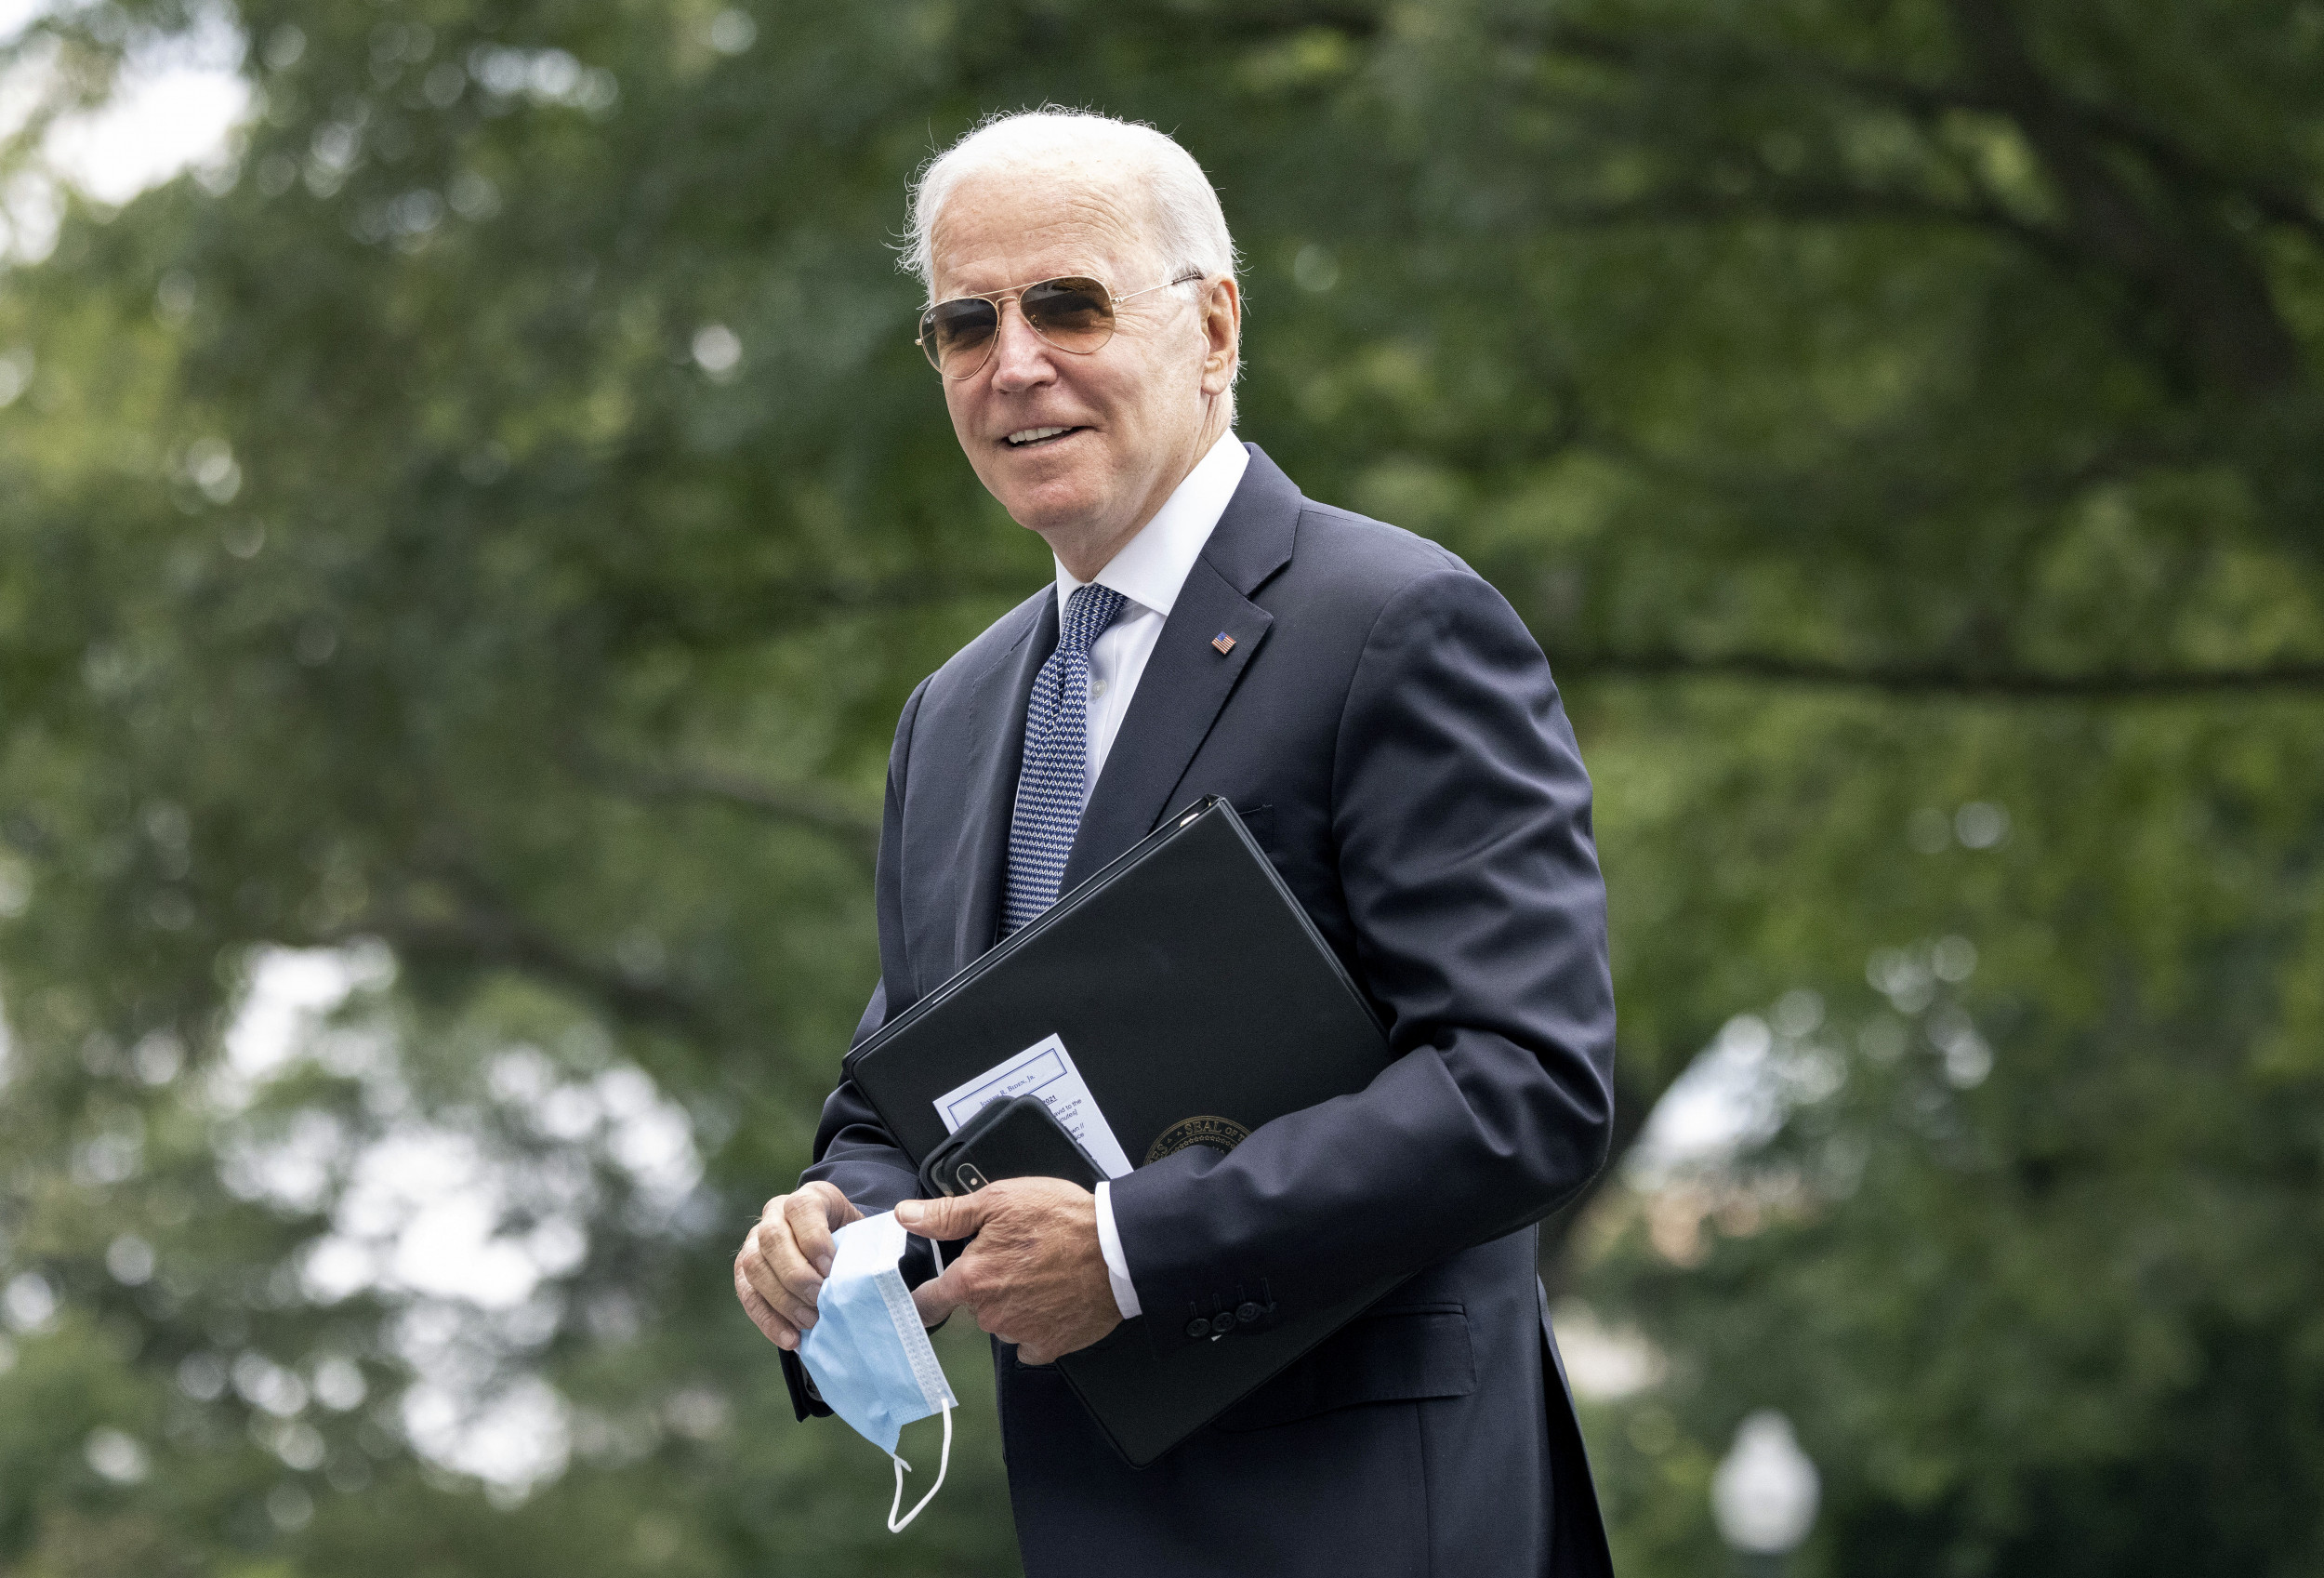 Biden's Approval Rating Drops in Latest Poll